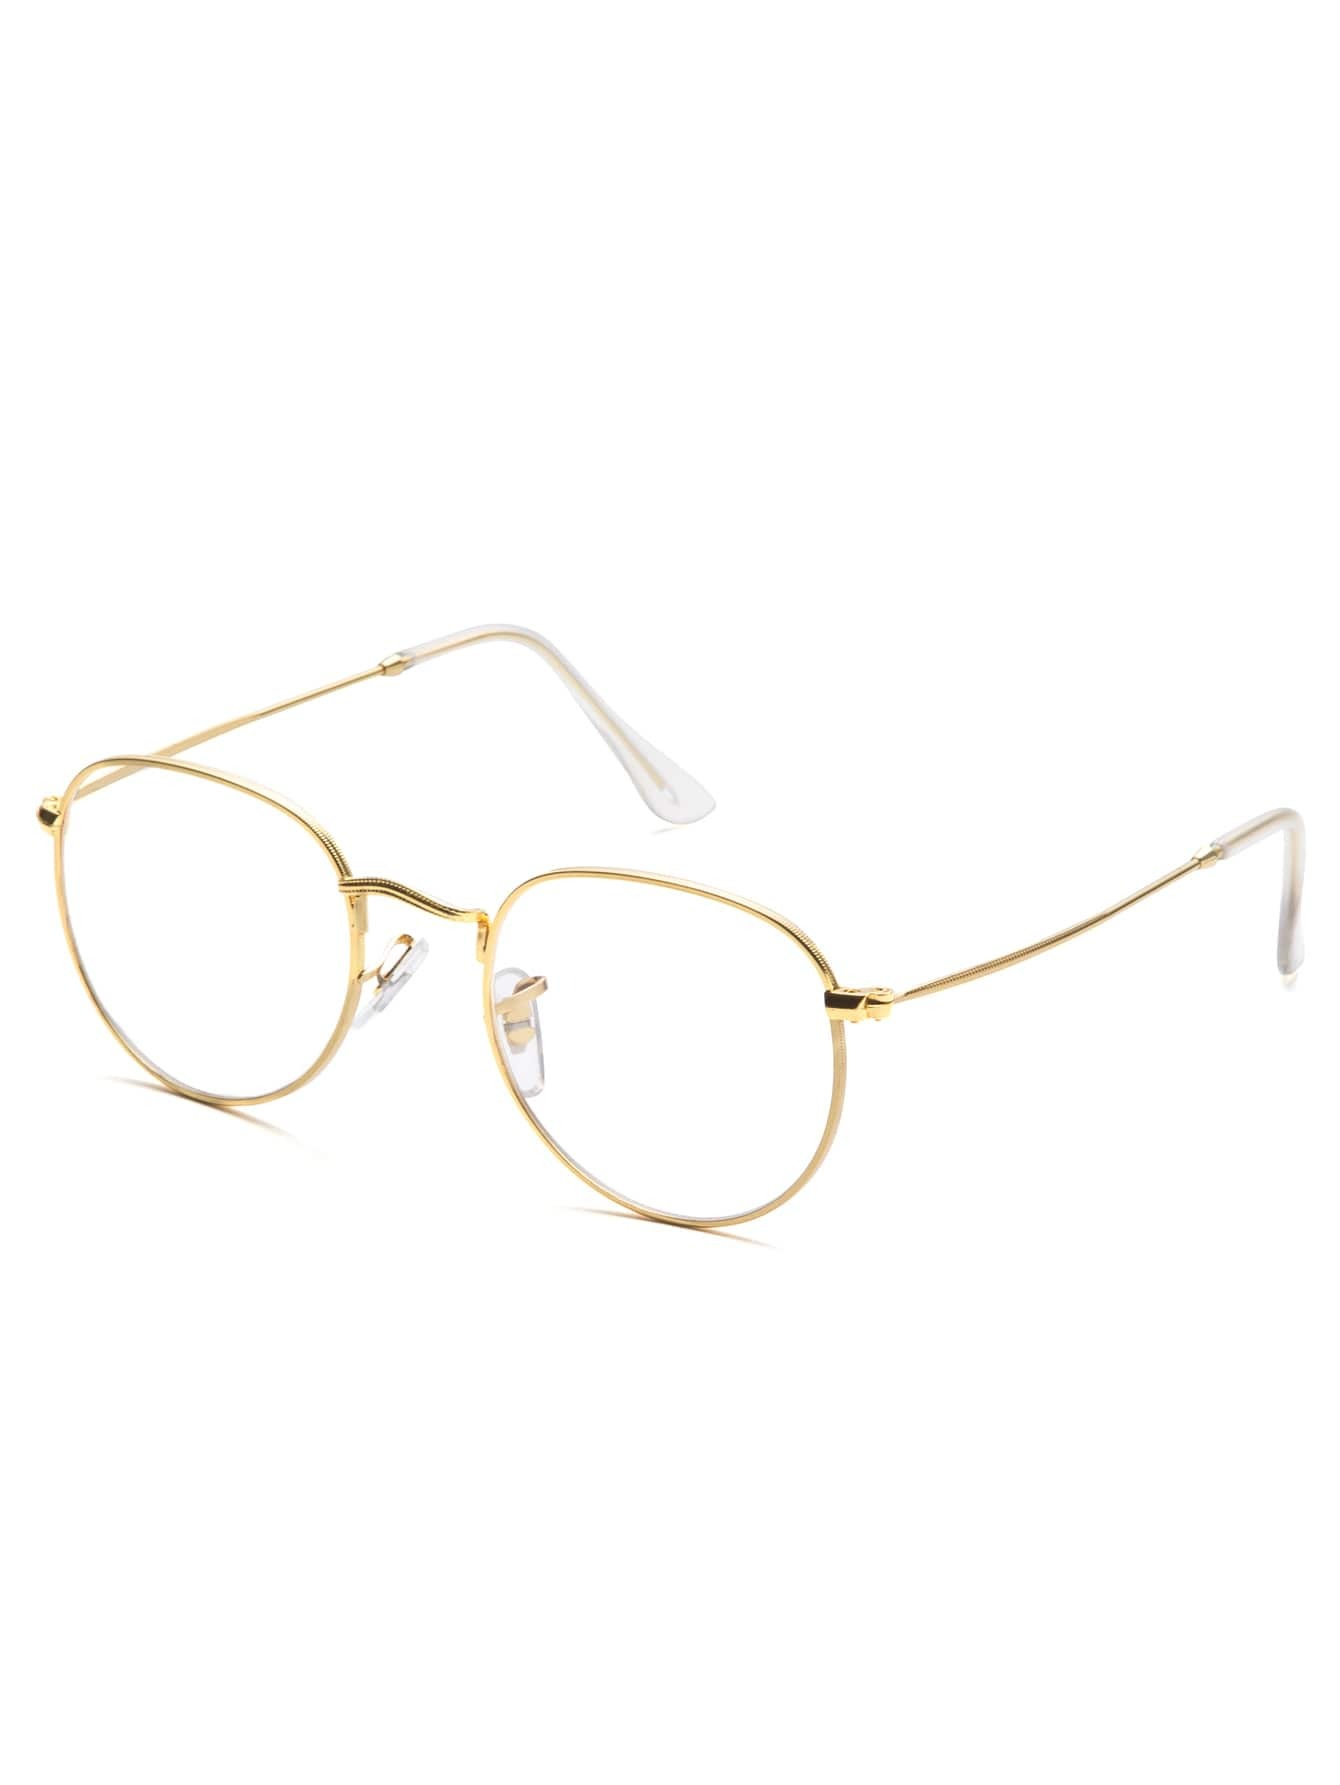 Glasses Frames In Gold : Gold Frame Clear Lens Glasses